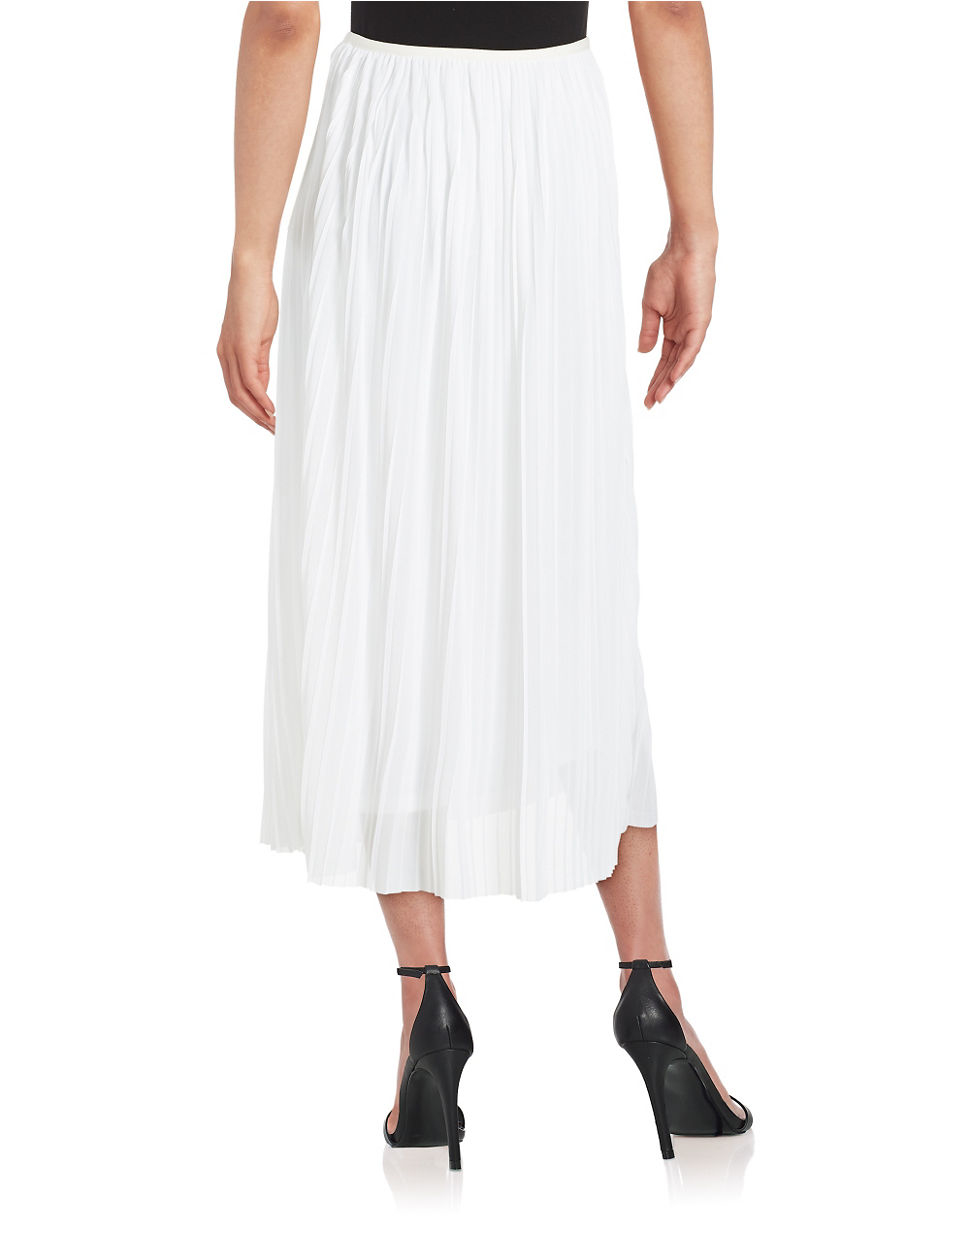 kensie pleated chiffon maxi skirt in white lyst